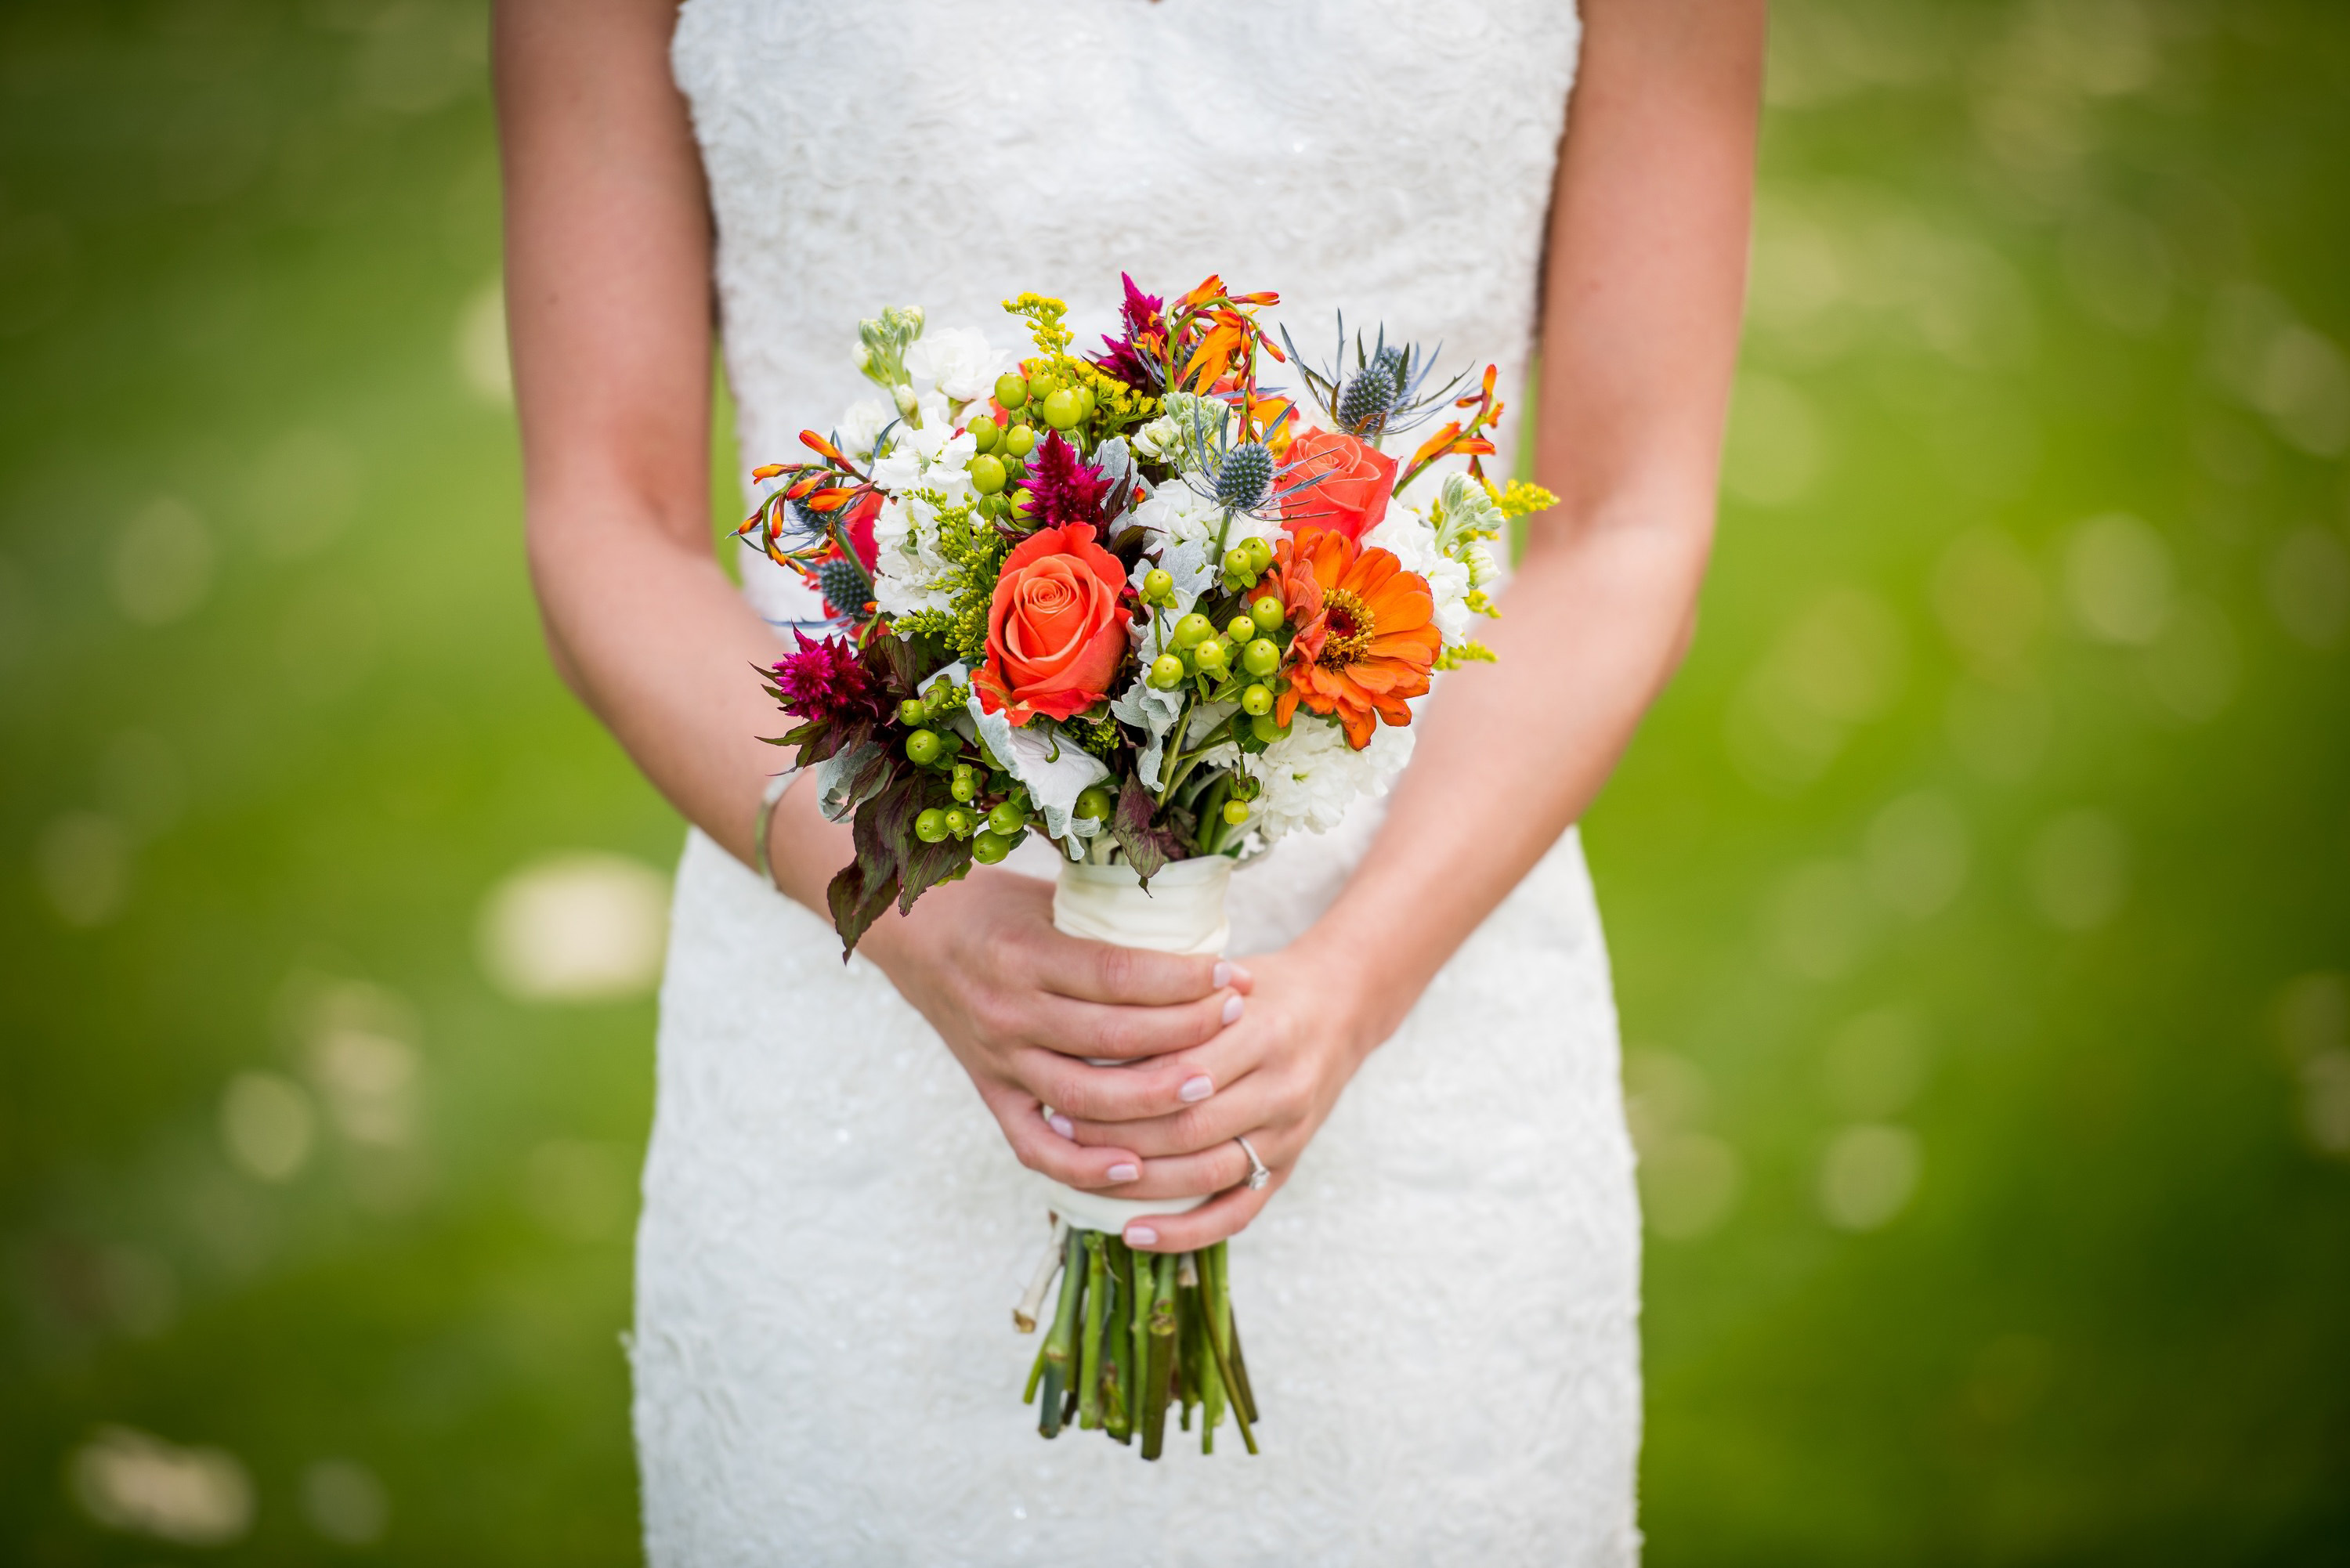 Woman in a white dress with a bouquet of flowers image - Free stock ...